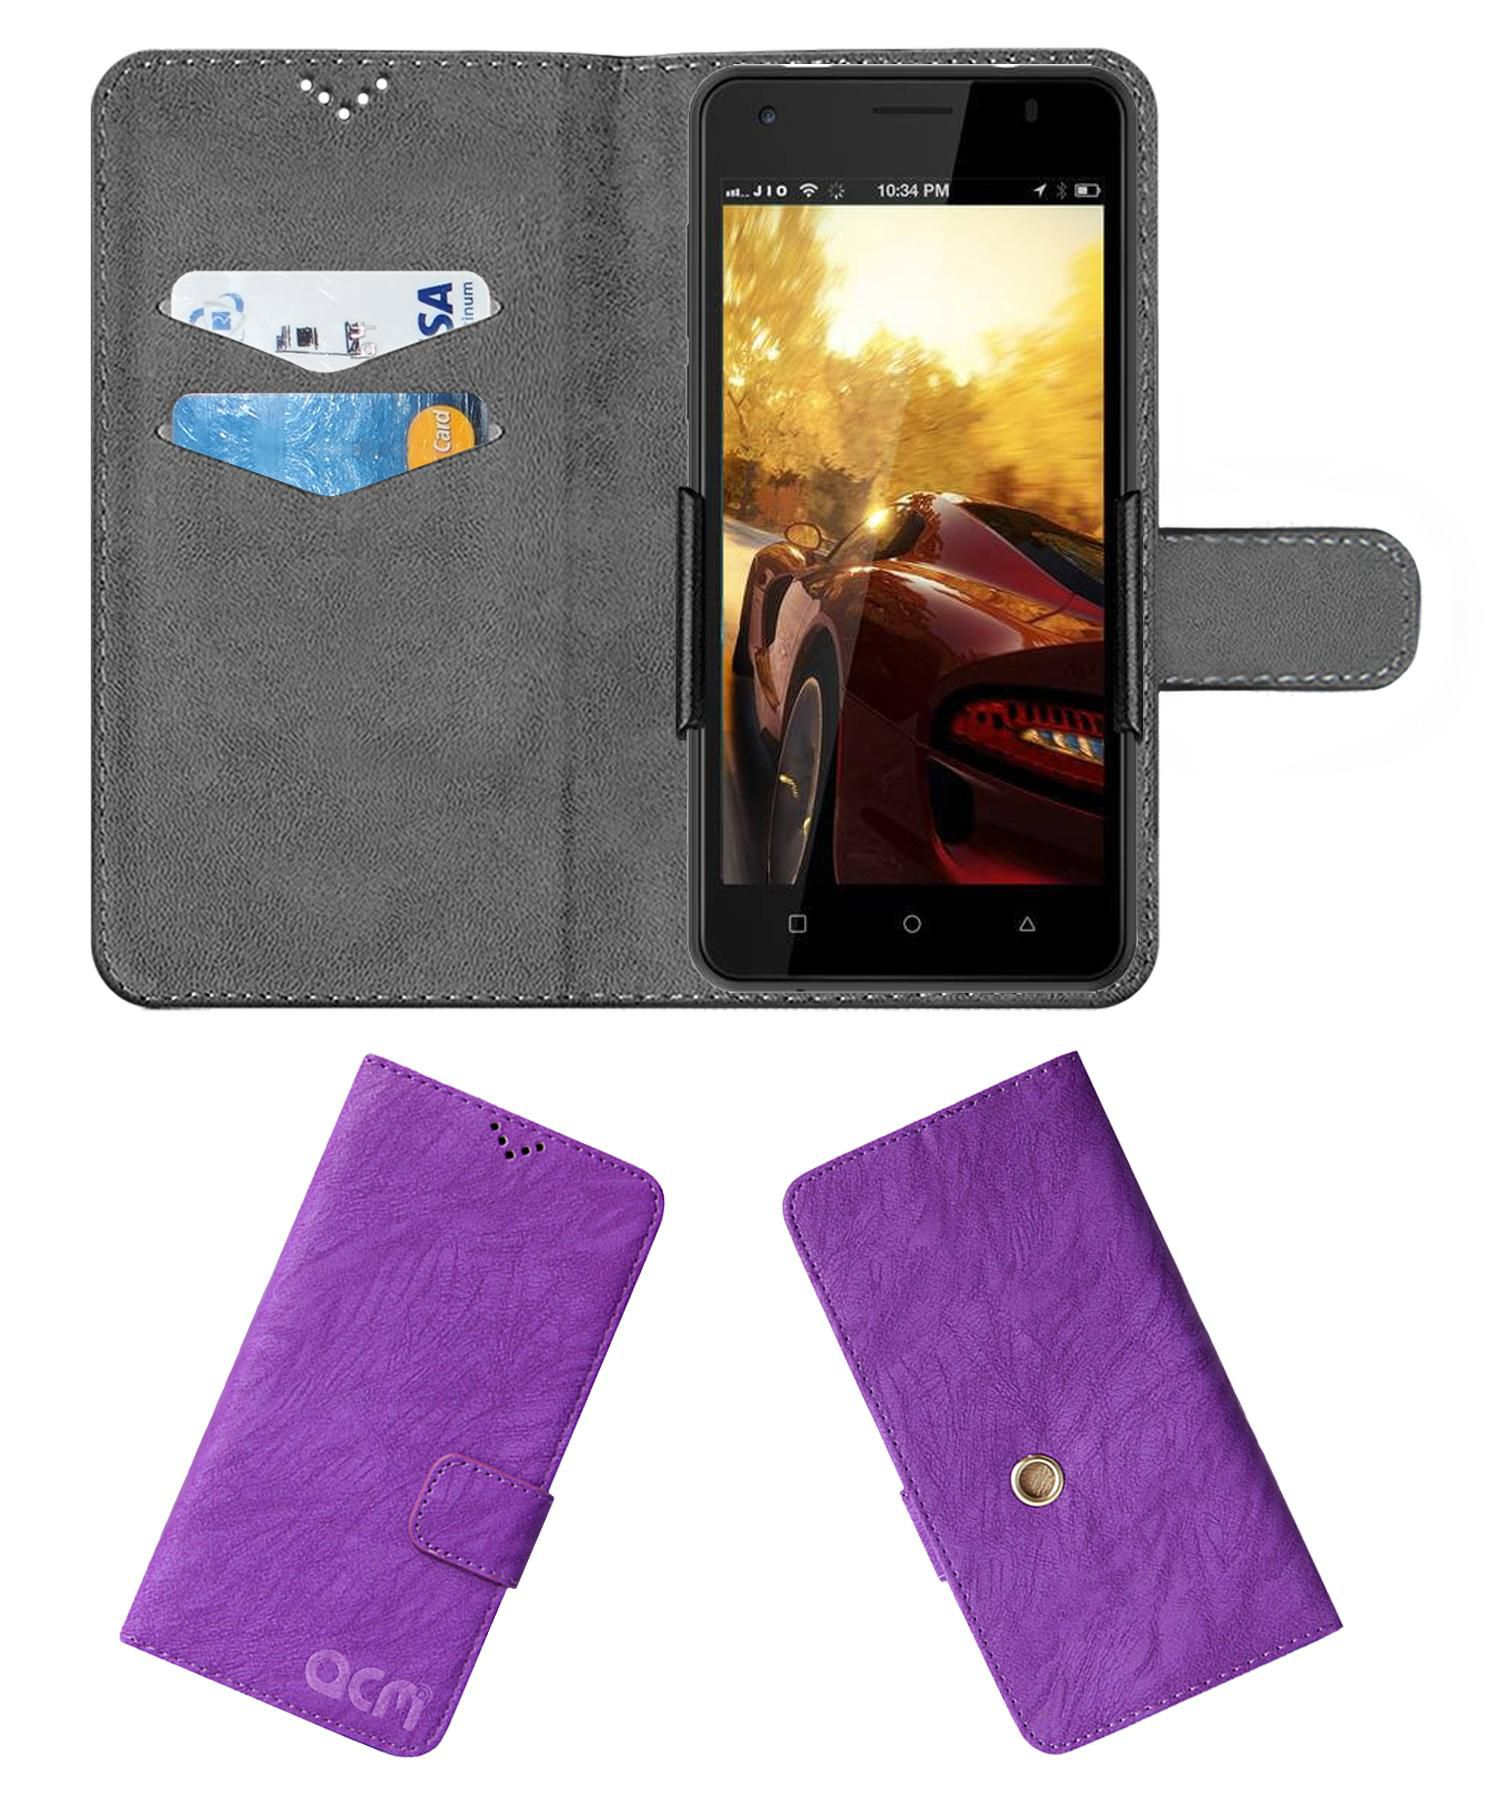 Ivoomi Me 5 Iv 505 Flip Cover by ACM - Purple Clip holder to hold your mobile securely